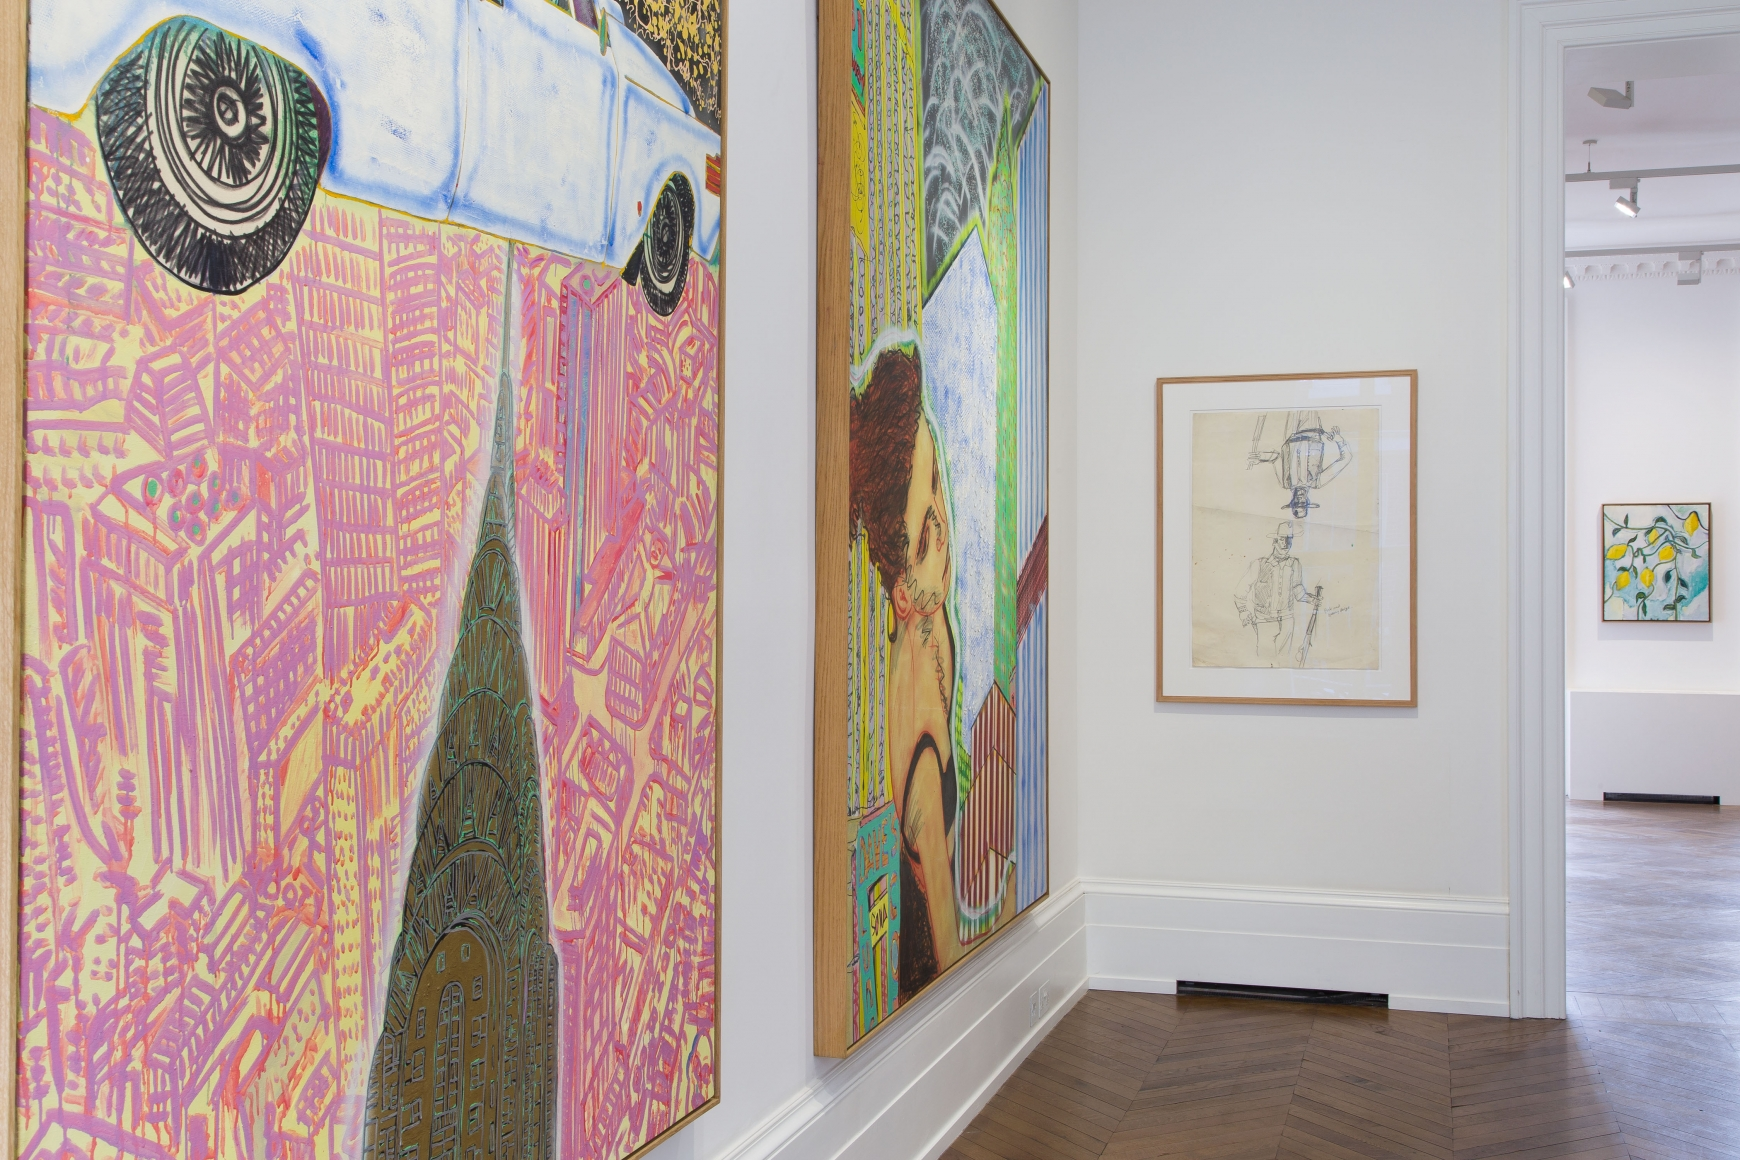 Peter Doig, Early Works, London, 2014, Installation Image 2